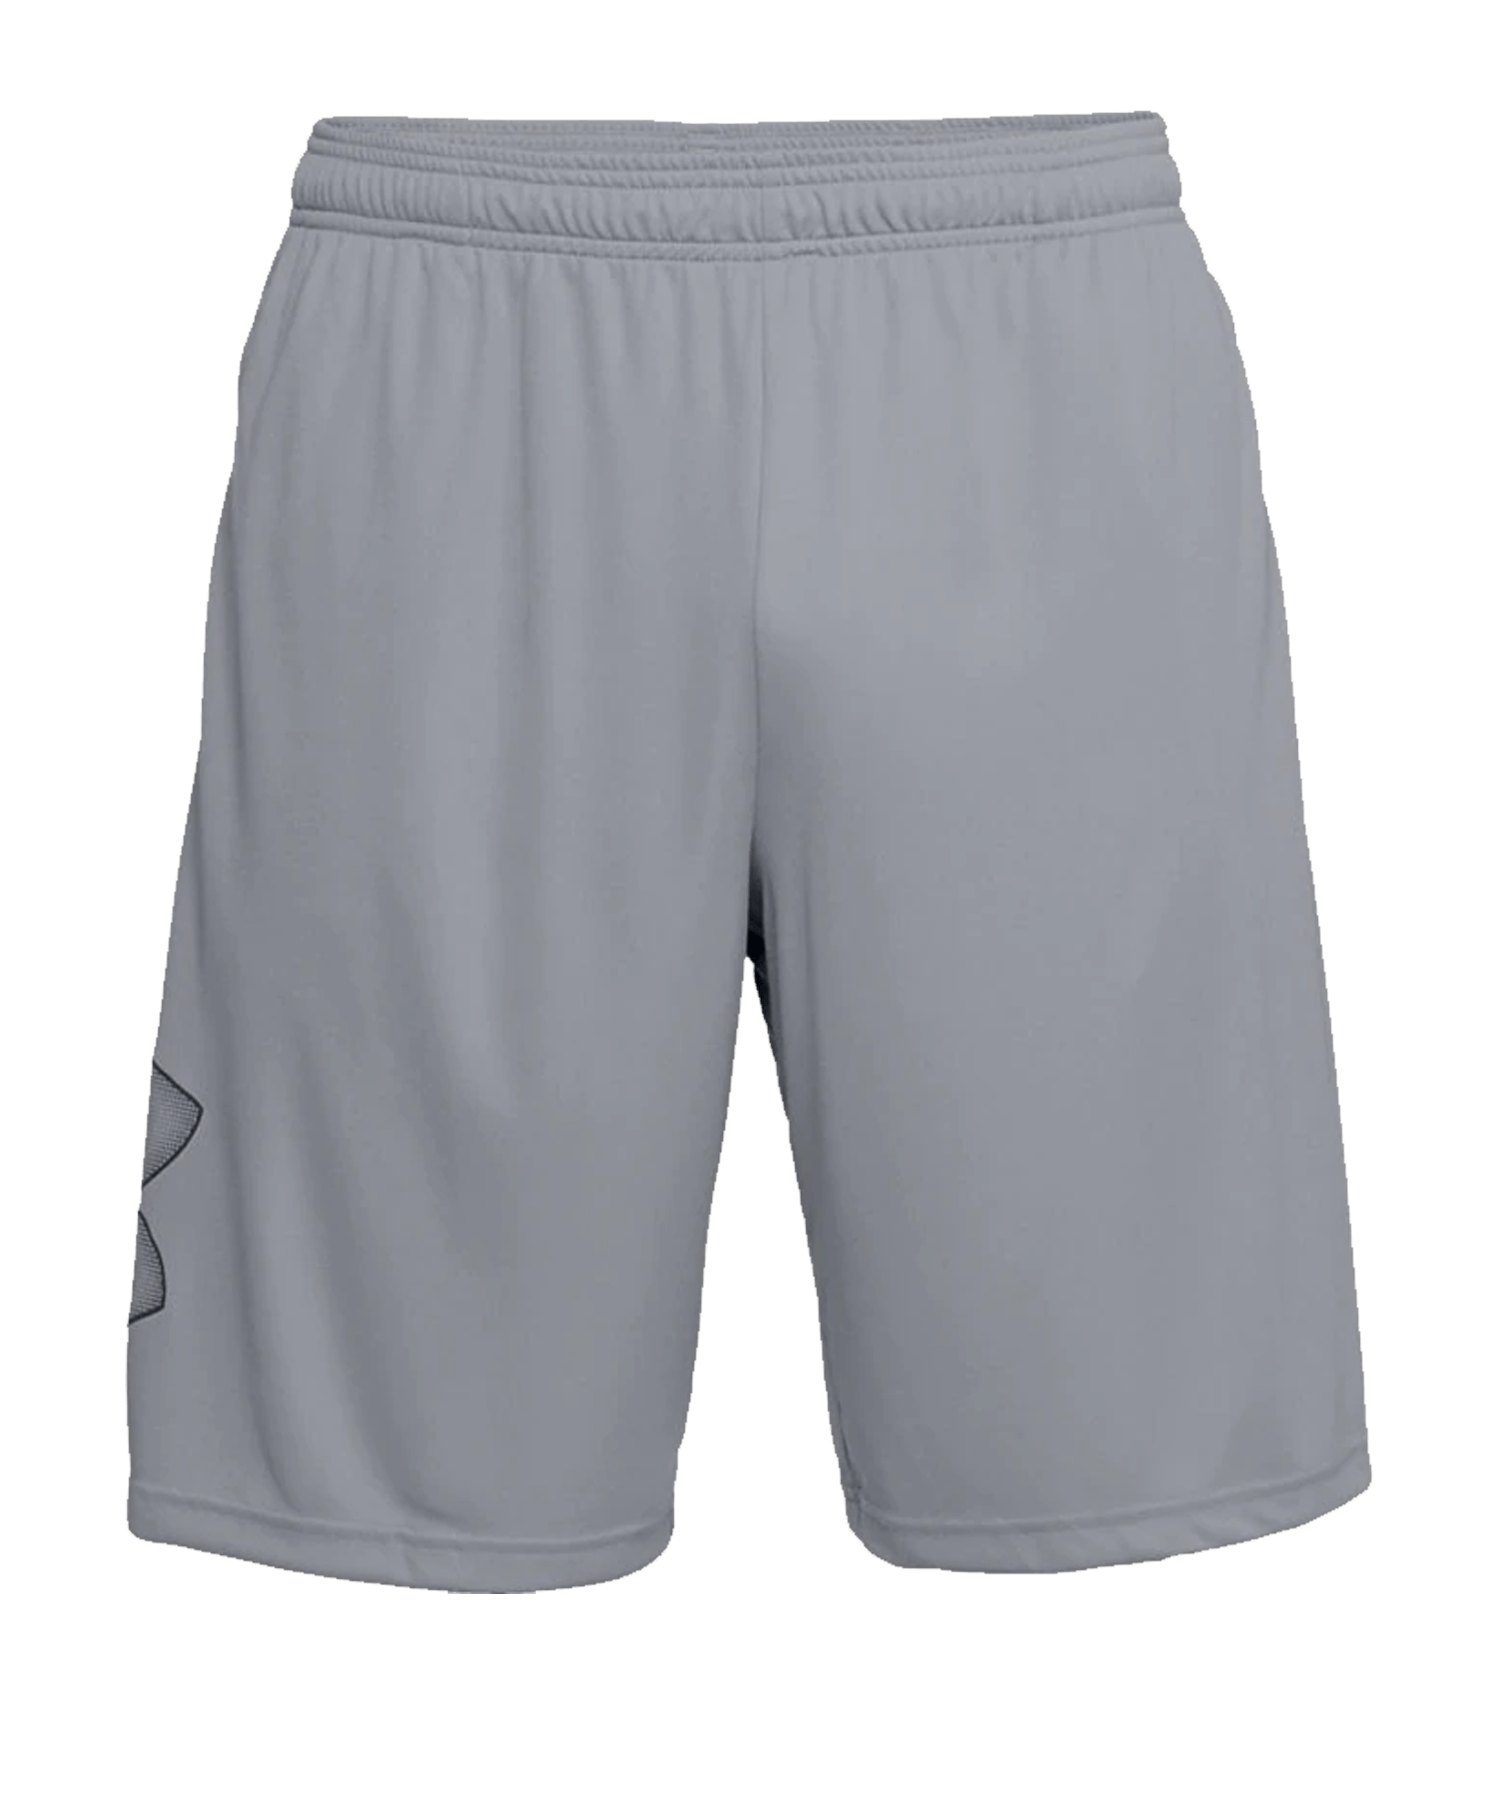 Under Armour Tech Graphic Short kurze Hose F035 - grau